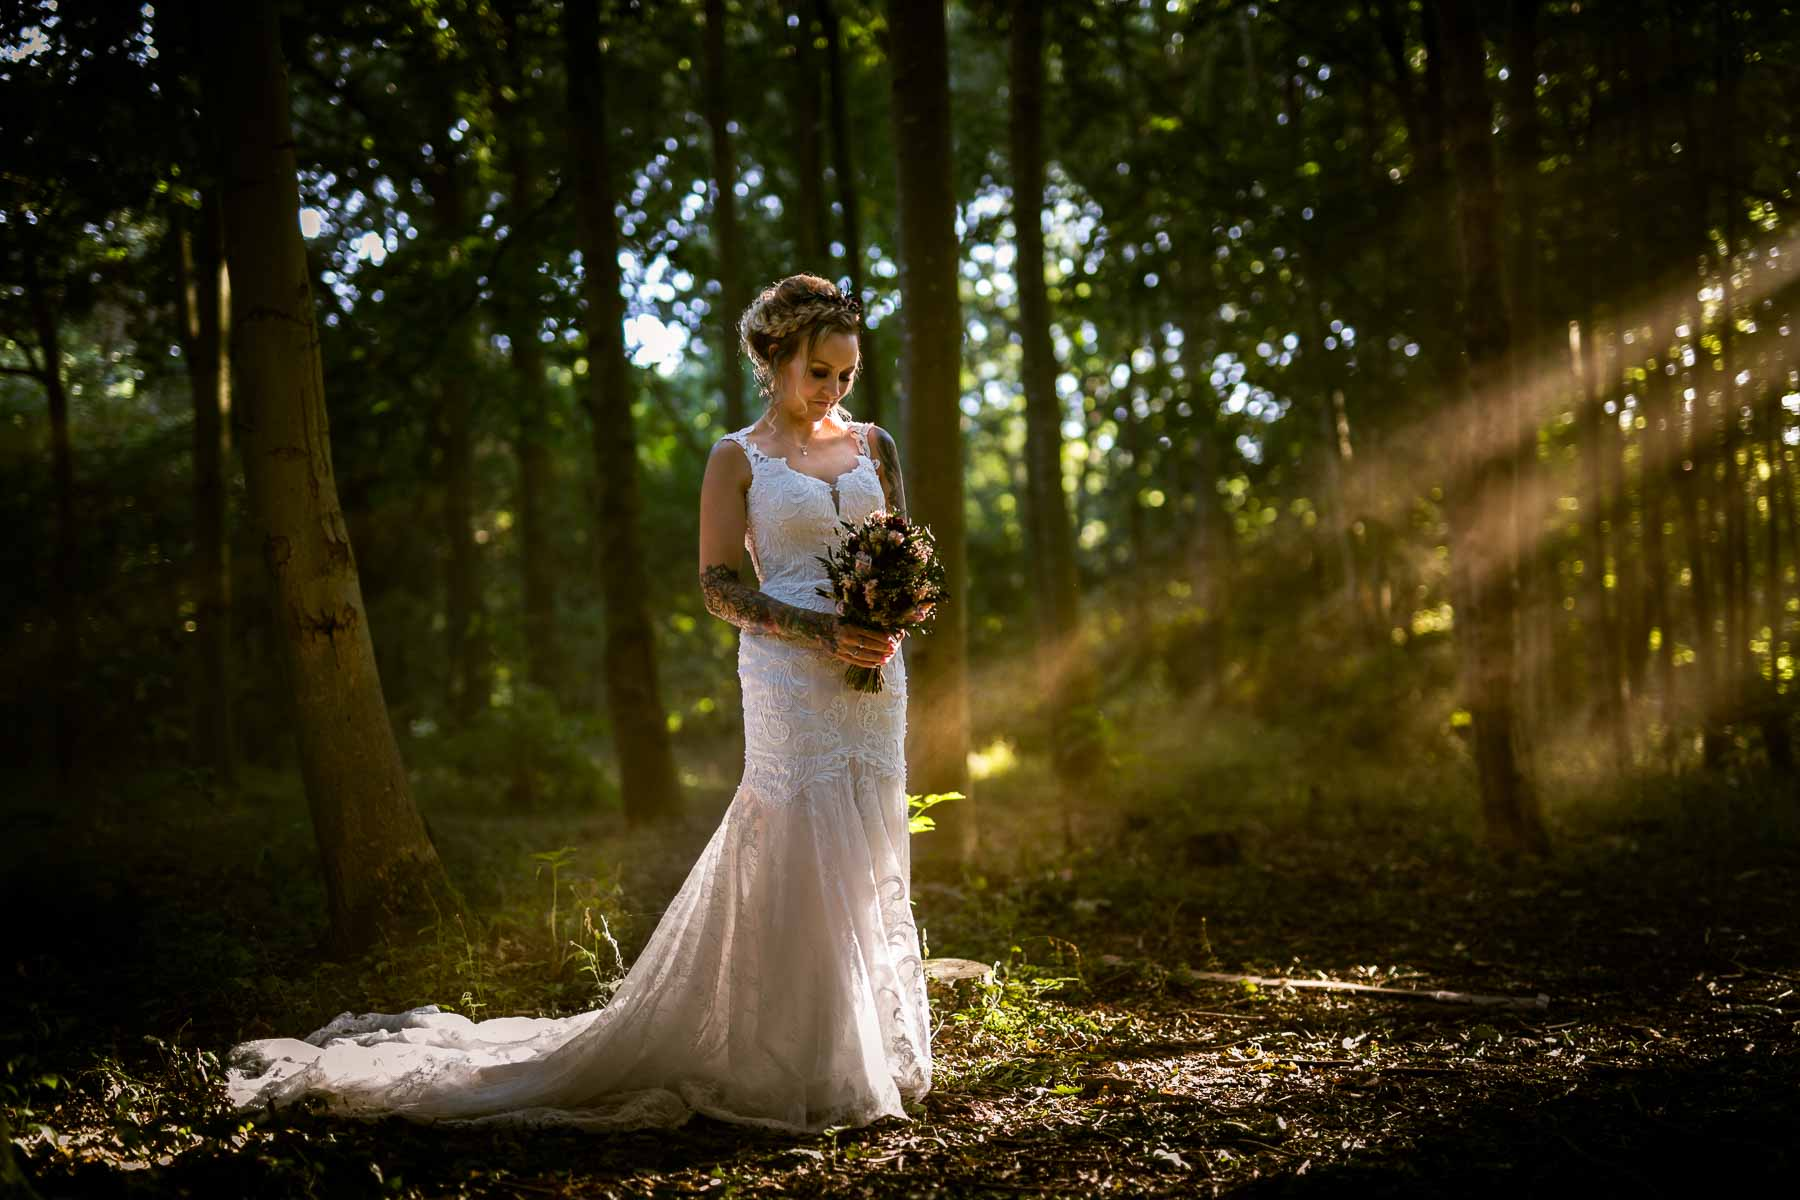 beautiful ethereal photo of a bride in a wood in east hunsbury country park, with sun beams piecing the woodland canopy